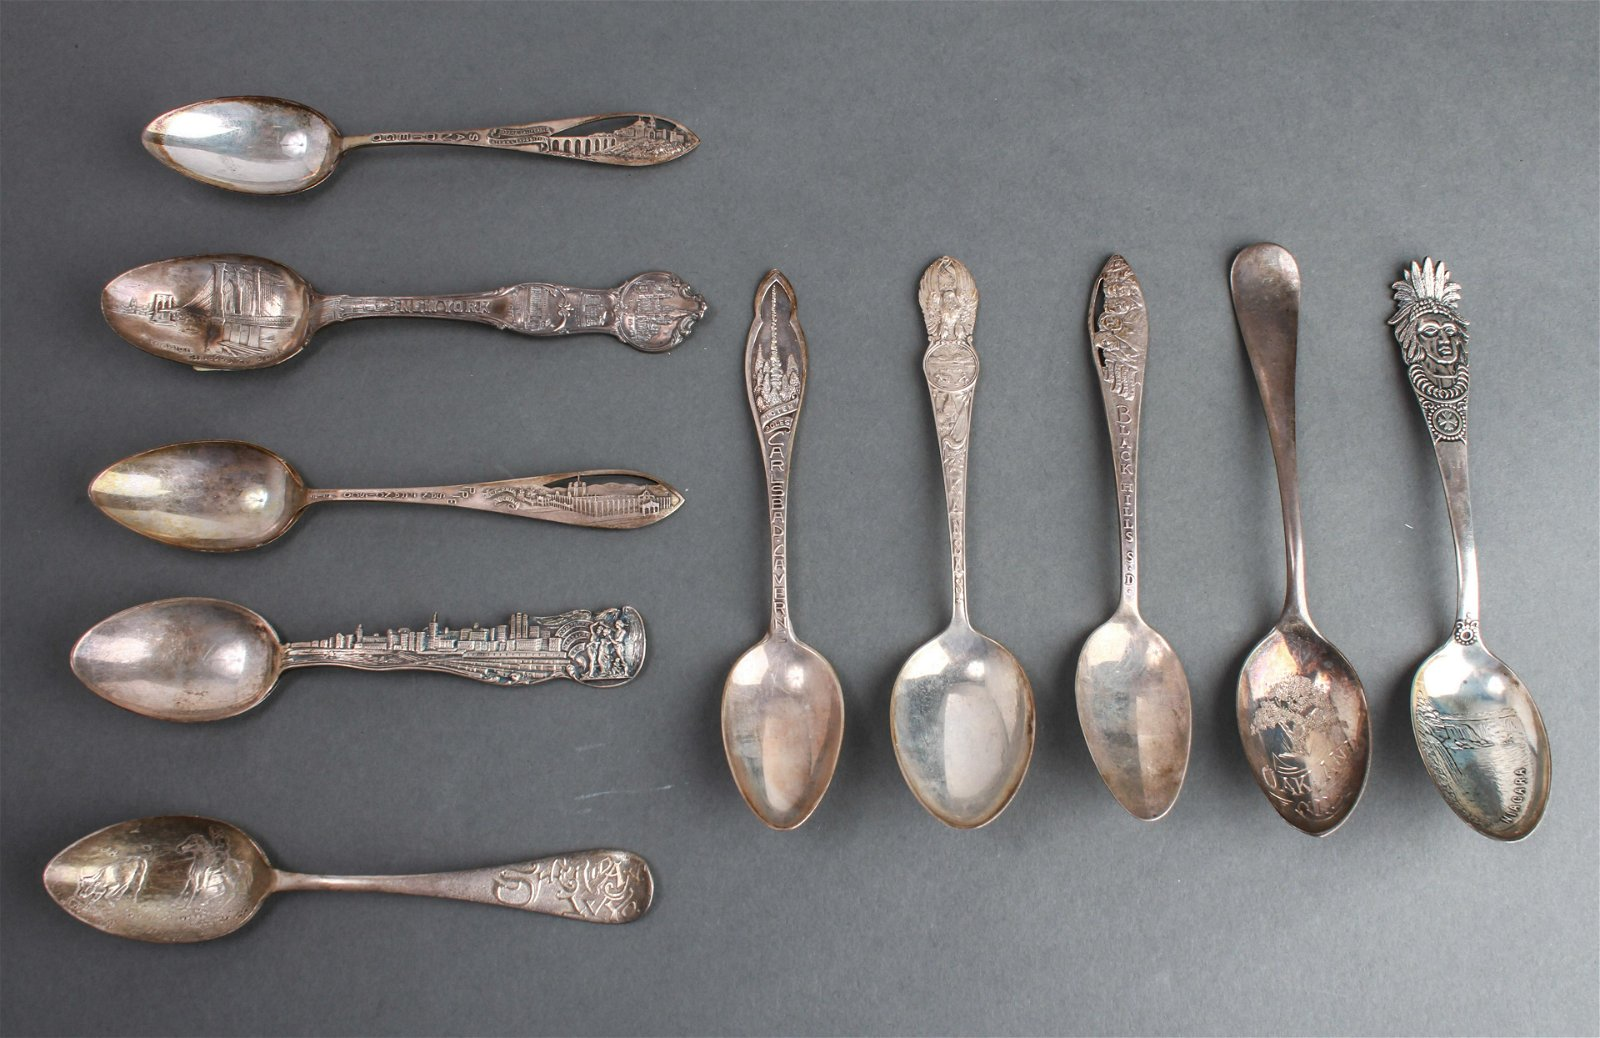 Silver Souvenir Spoons U.S. Cities, Group of 10